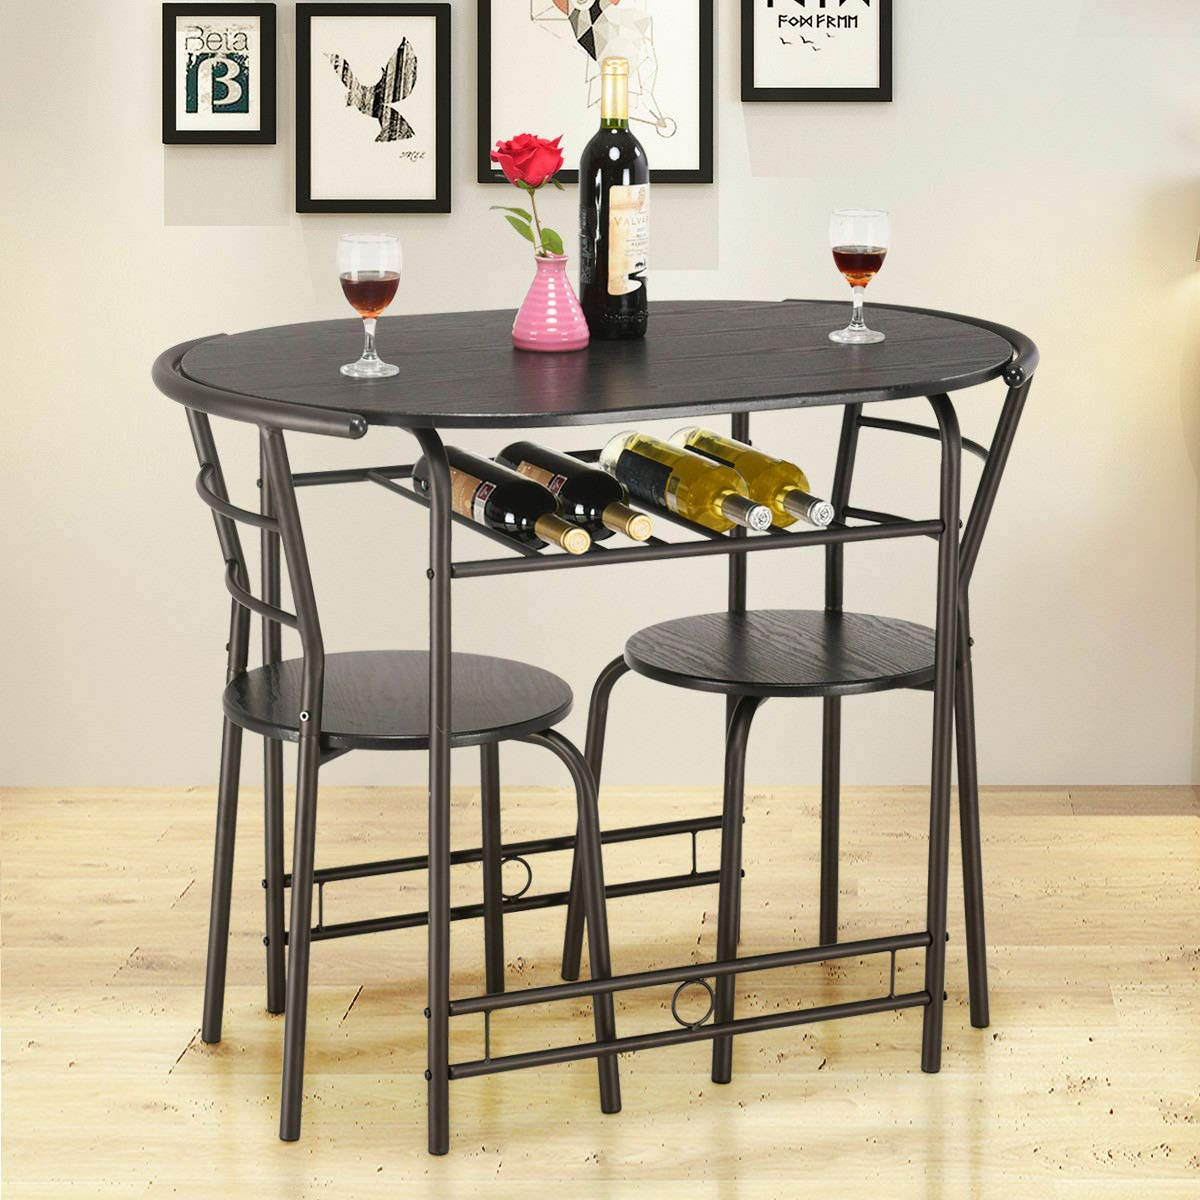 Stark Item 3 PCS Dining Set Table and 2 Chairs Home Kitchen Breakfast Bistro Pub Furniture